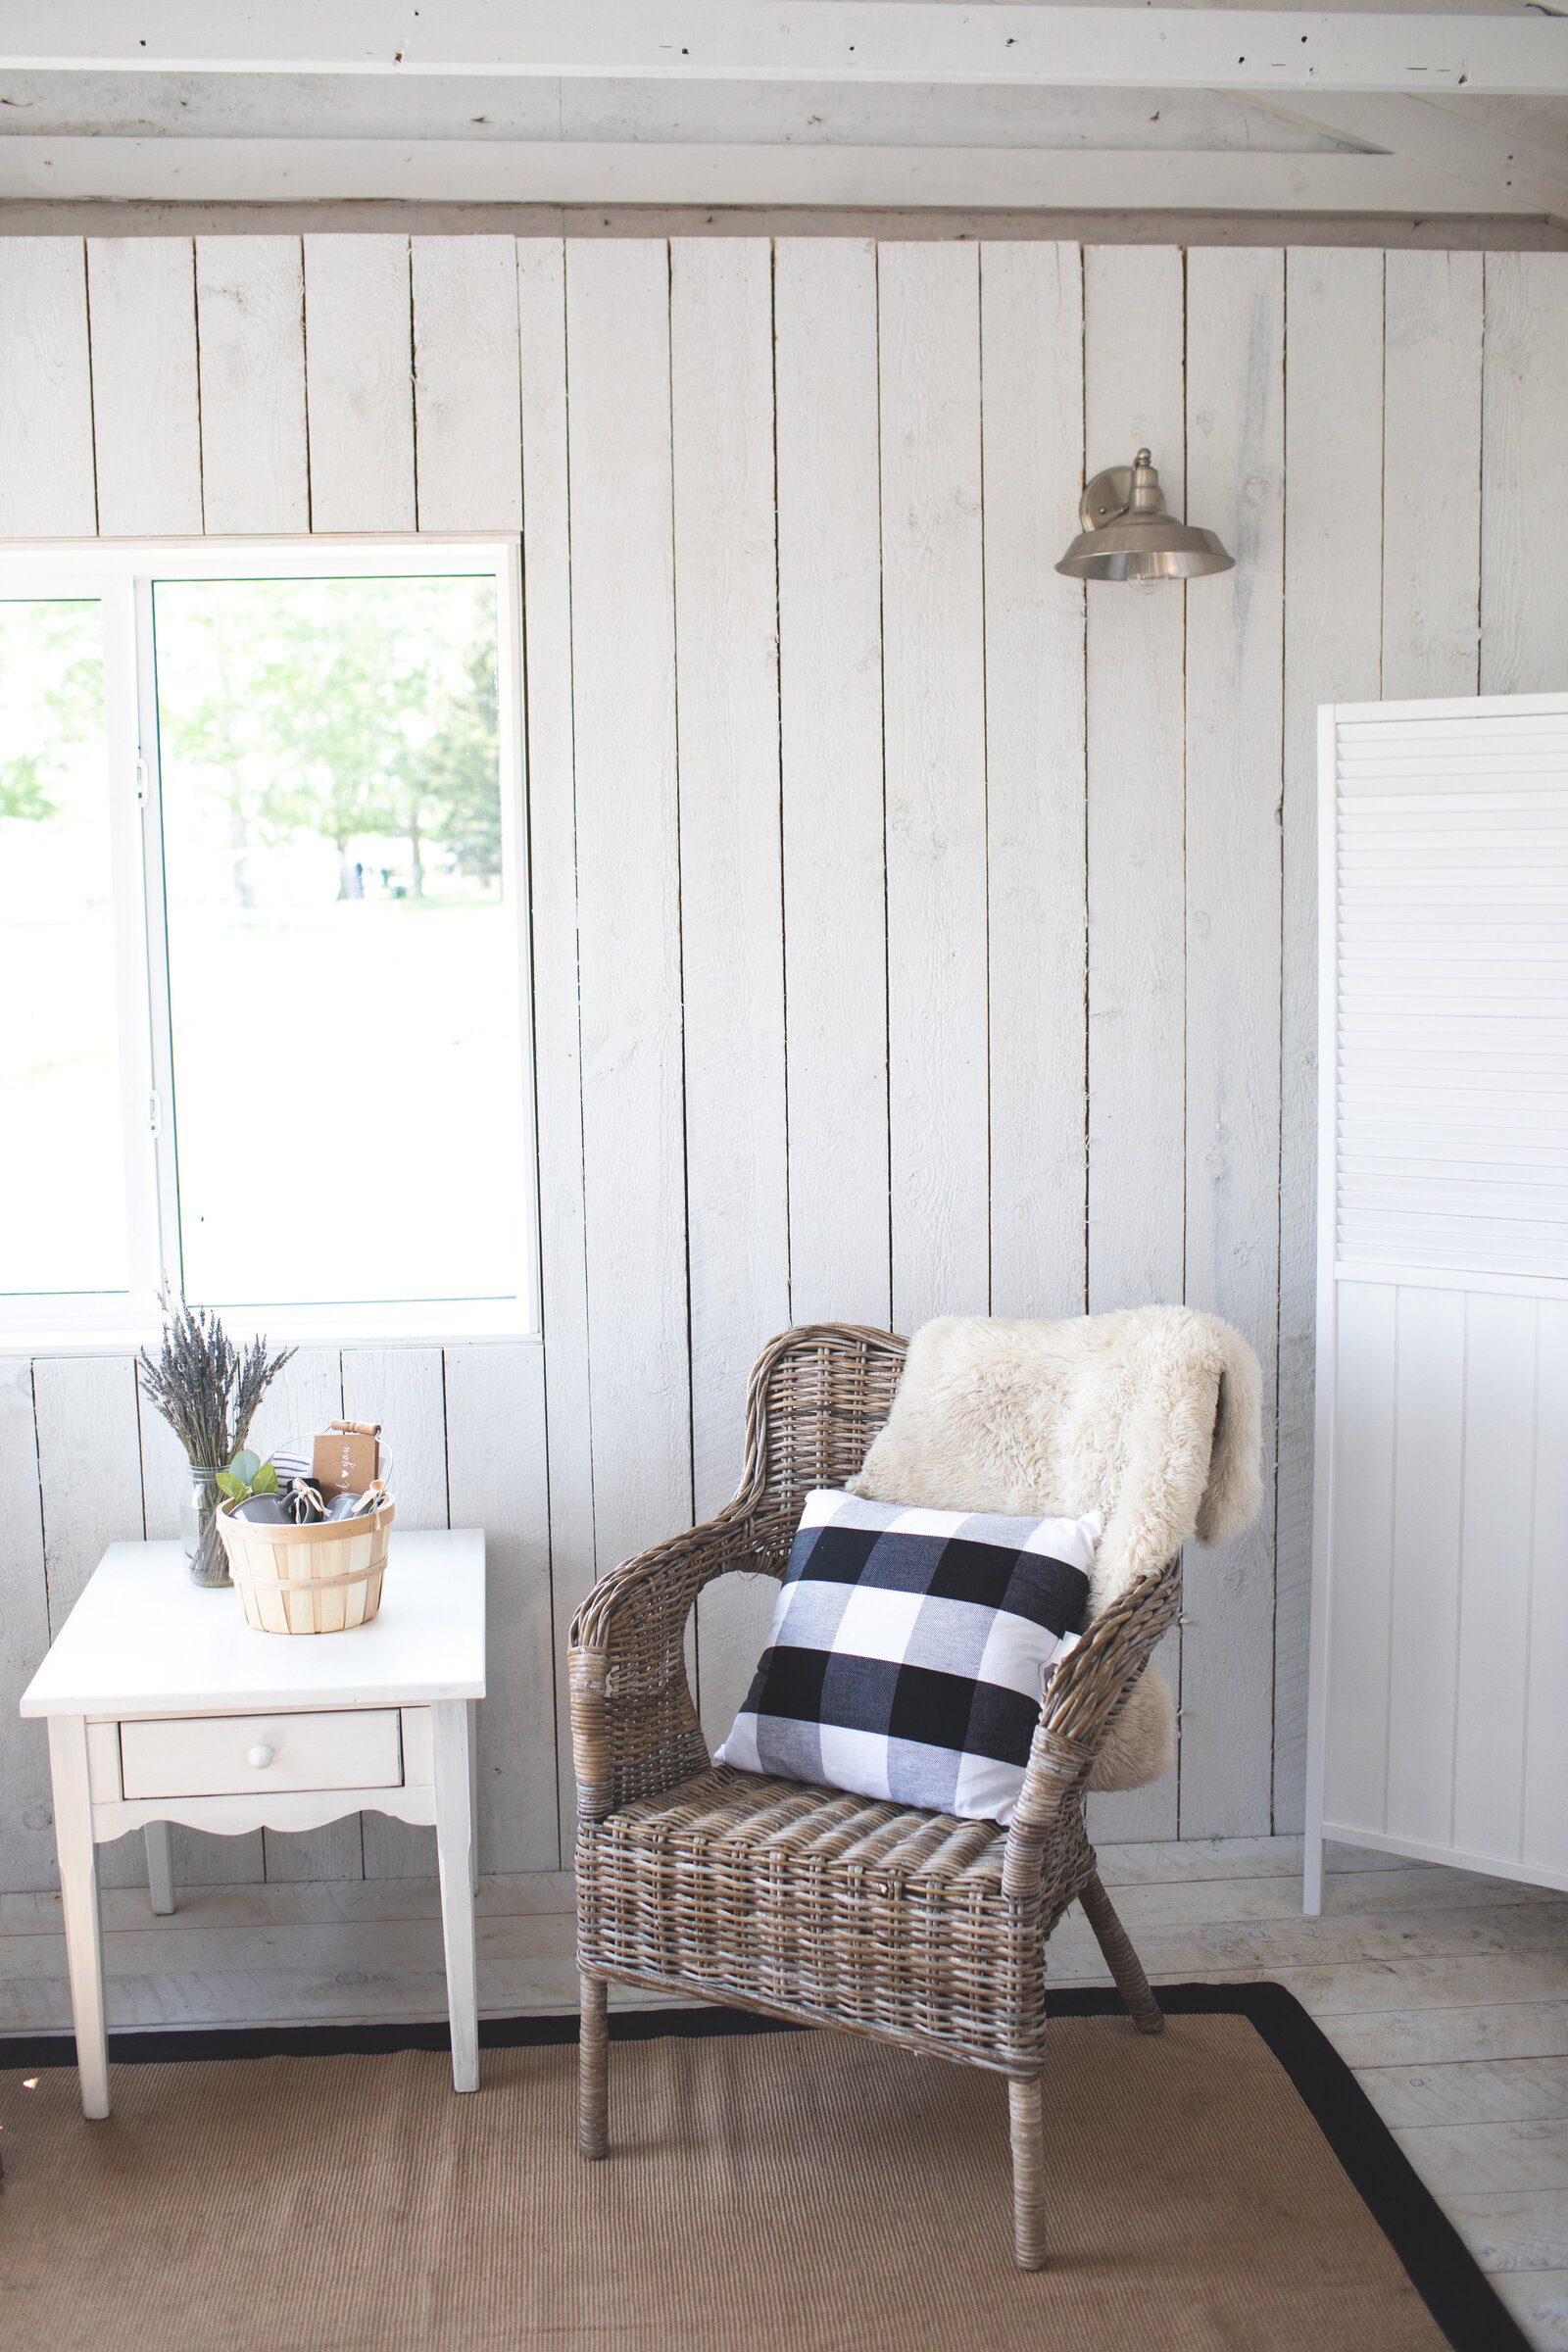 wicker chair with plaid pillow